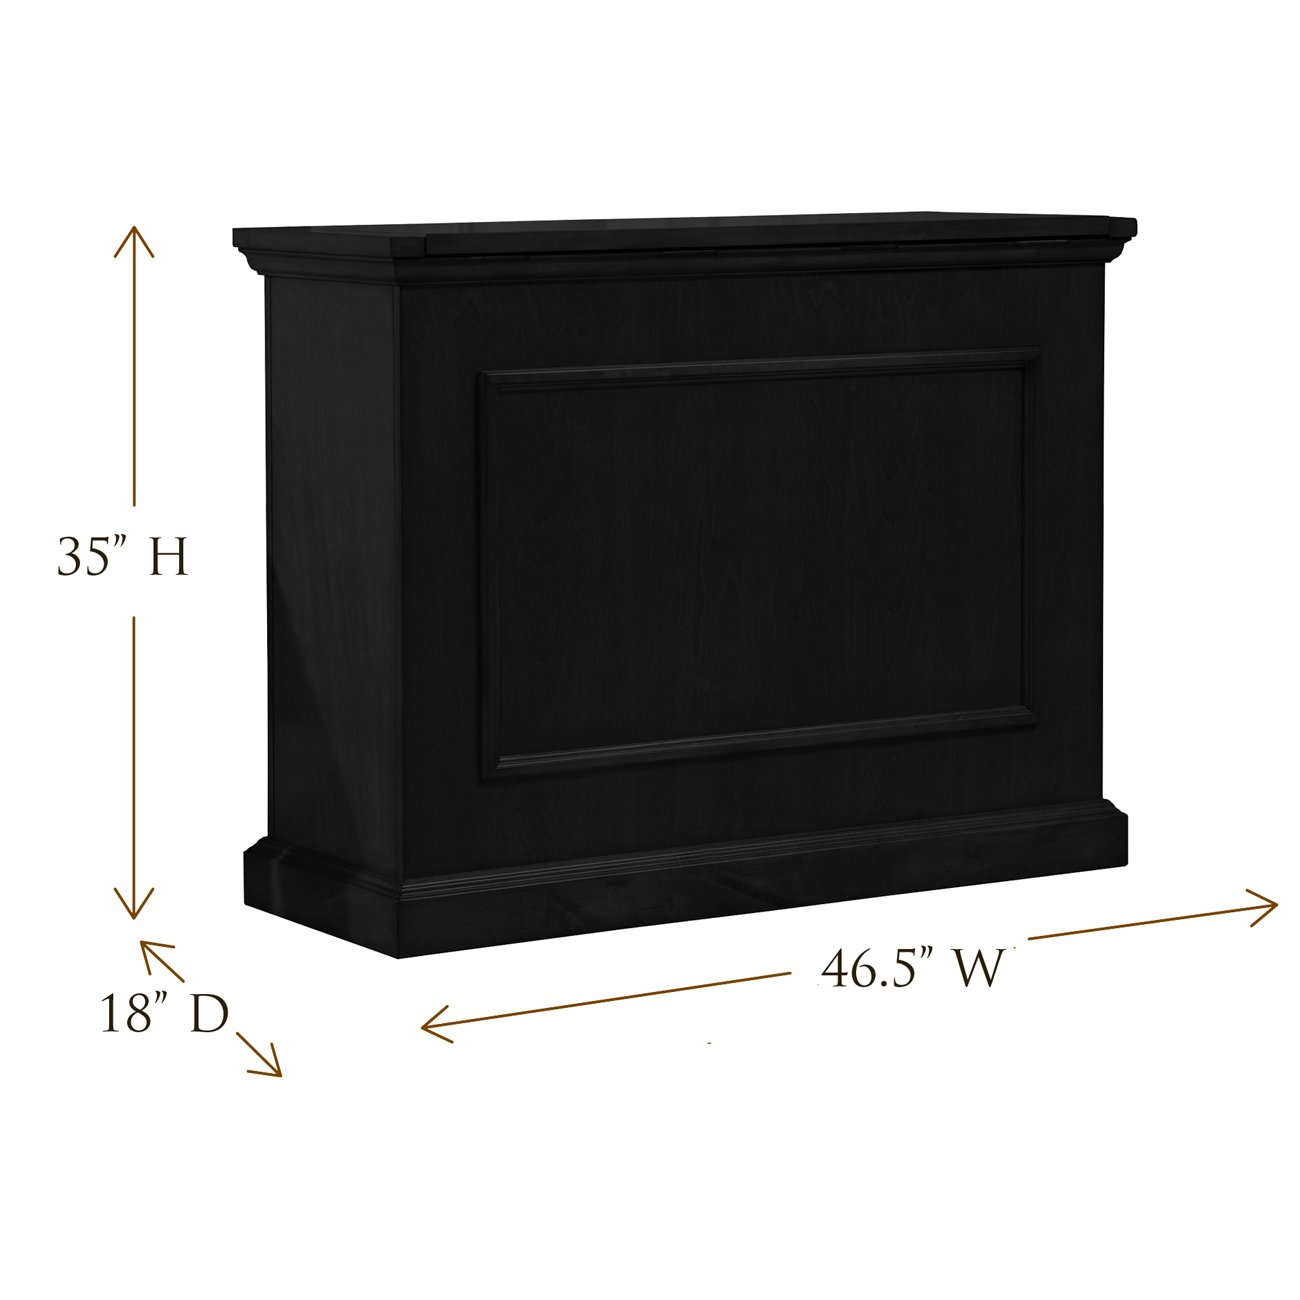 Amazon.com: Touchstone Elevate Motorized TV Lift Cabinet – Rich ...